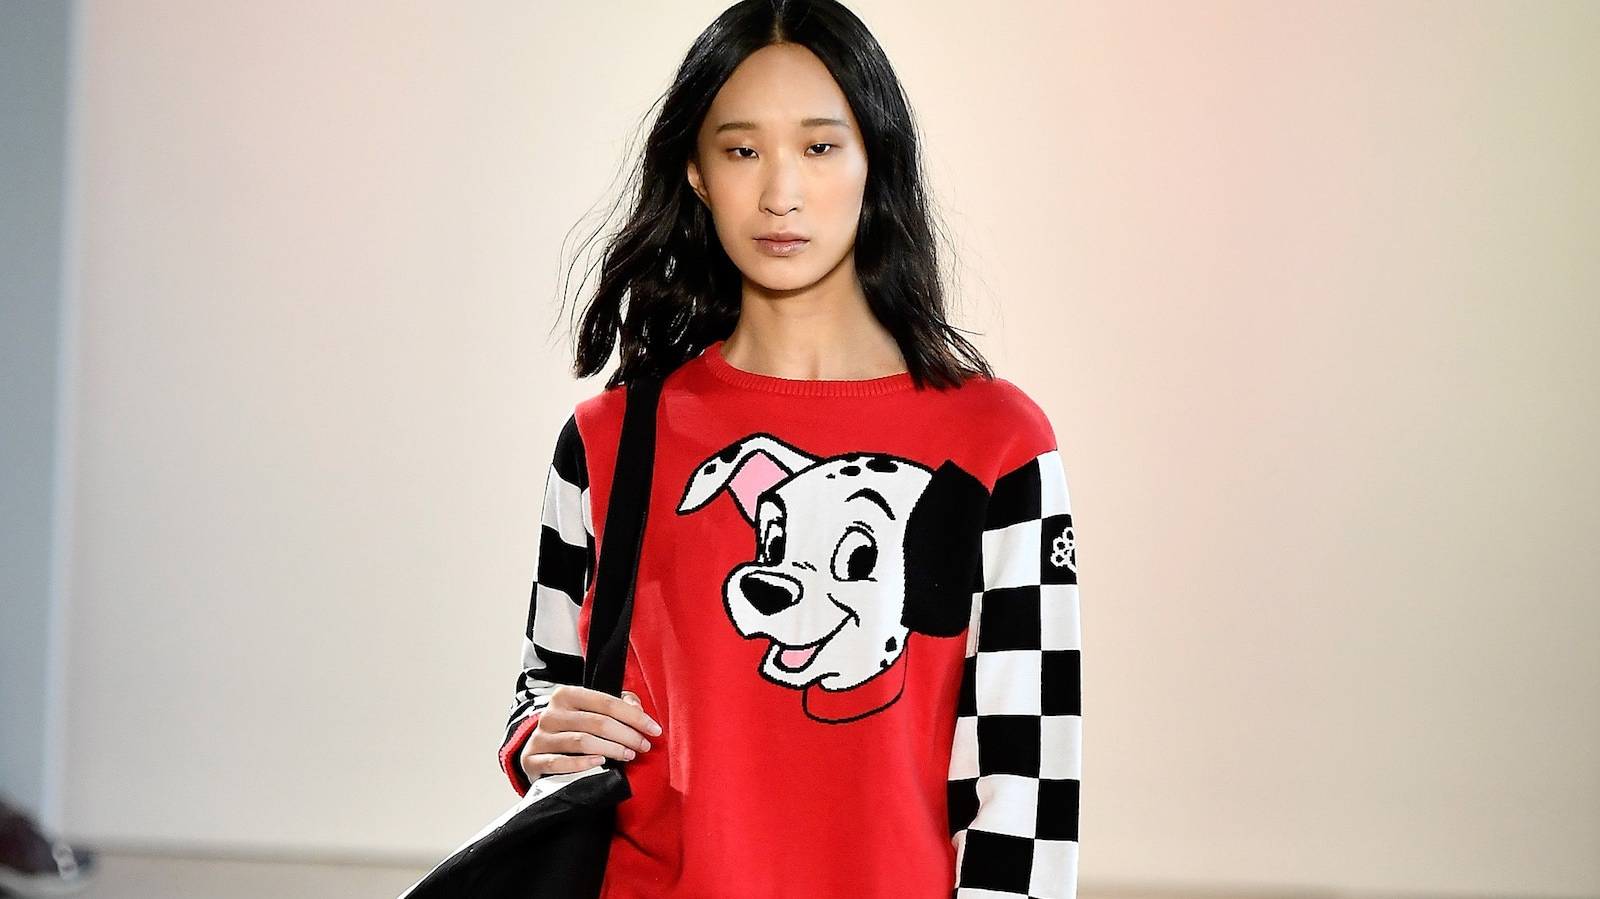 101 Dalmatians Spotted at NANA JUDY Show During New York Fashion Week